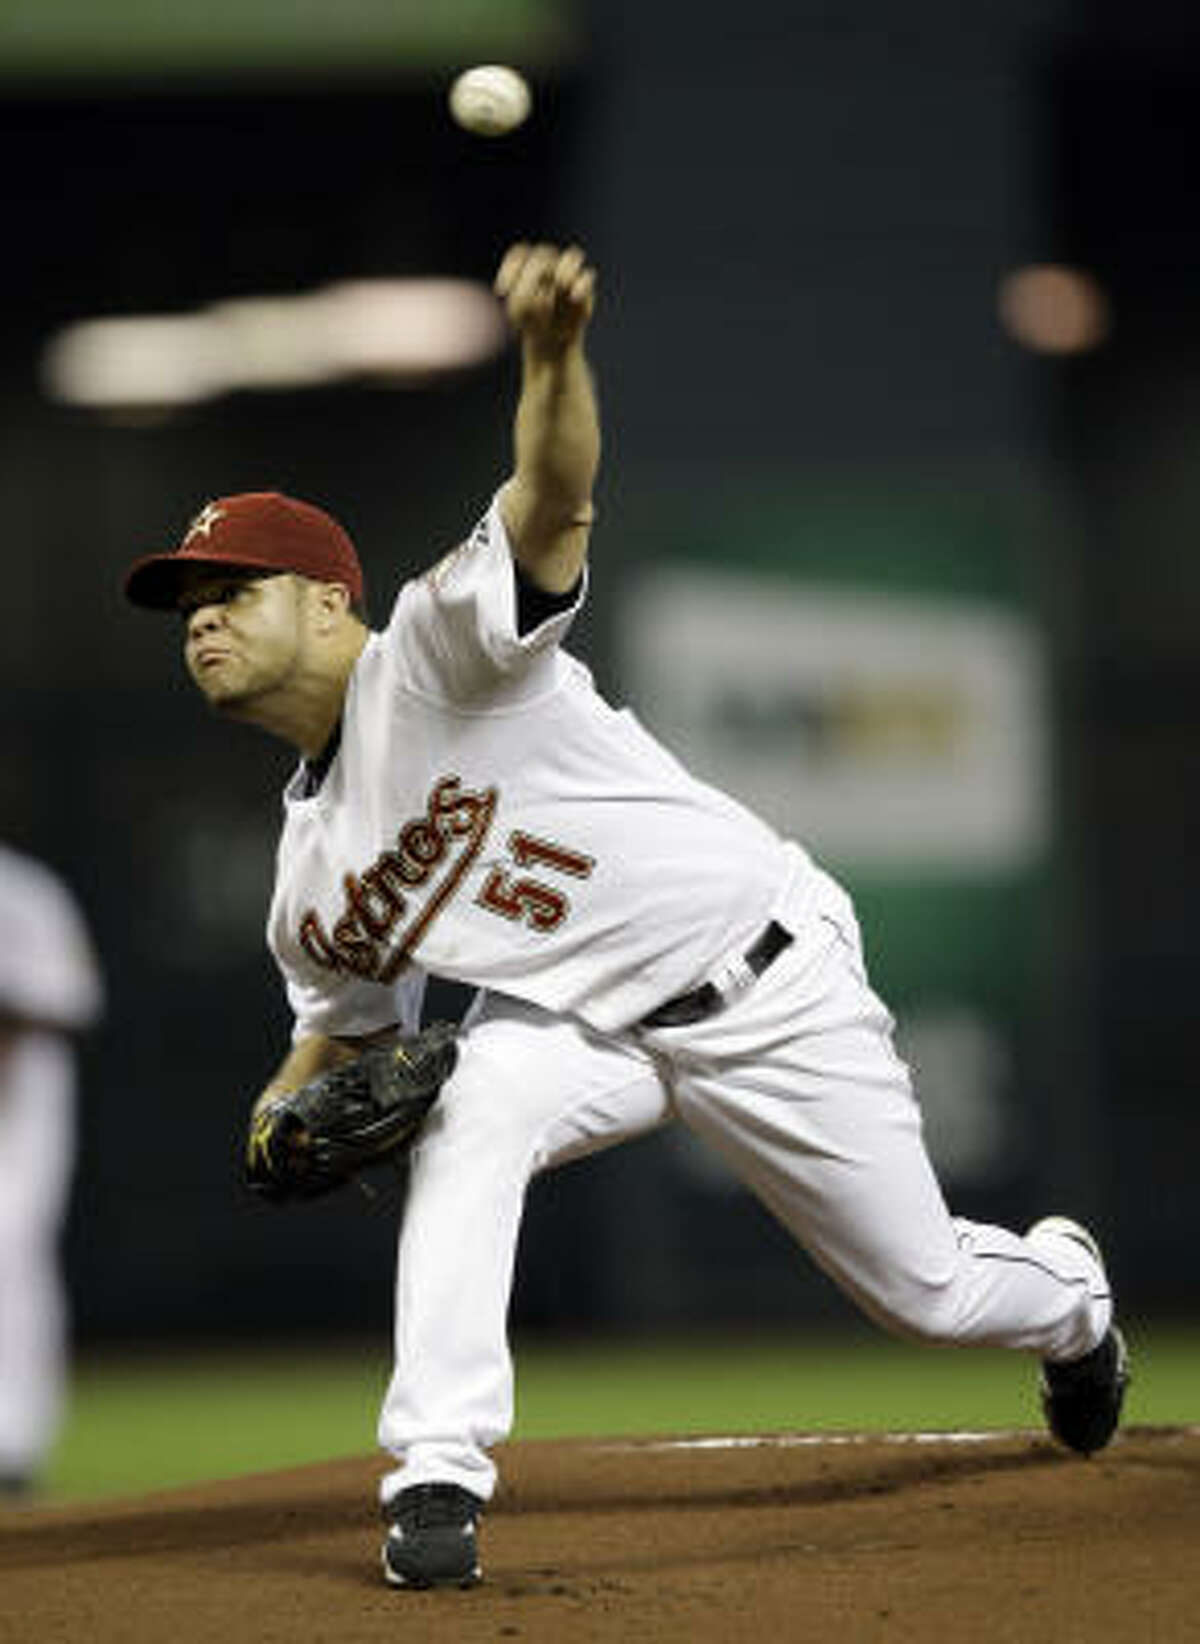 Astros pitcher Wandy Rodriguez made the start against the Reds.